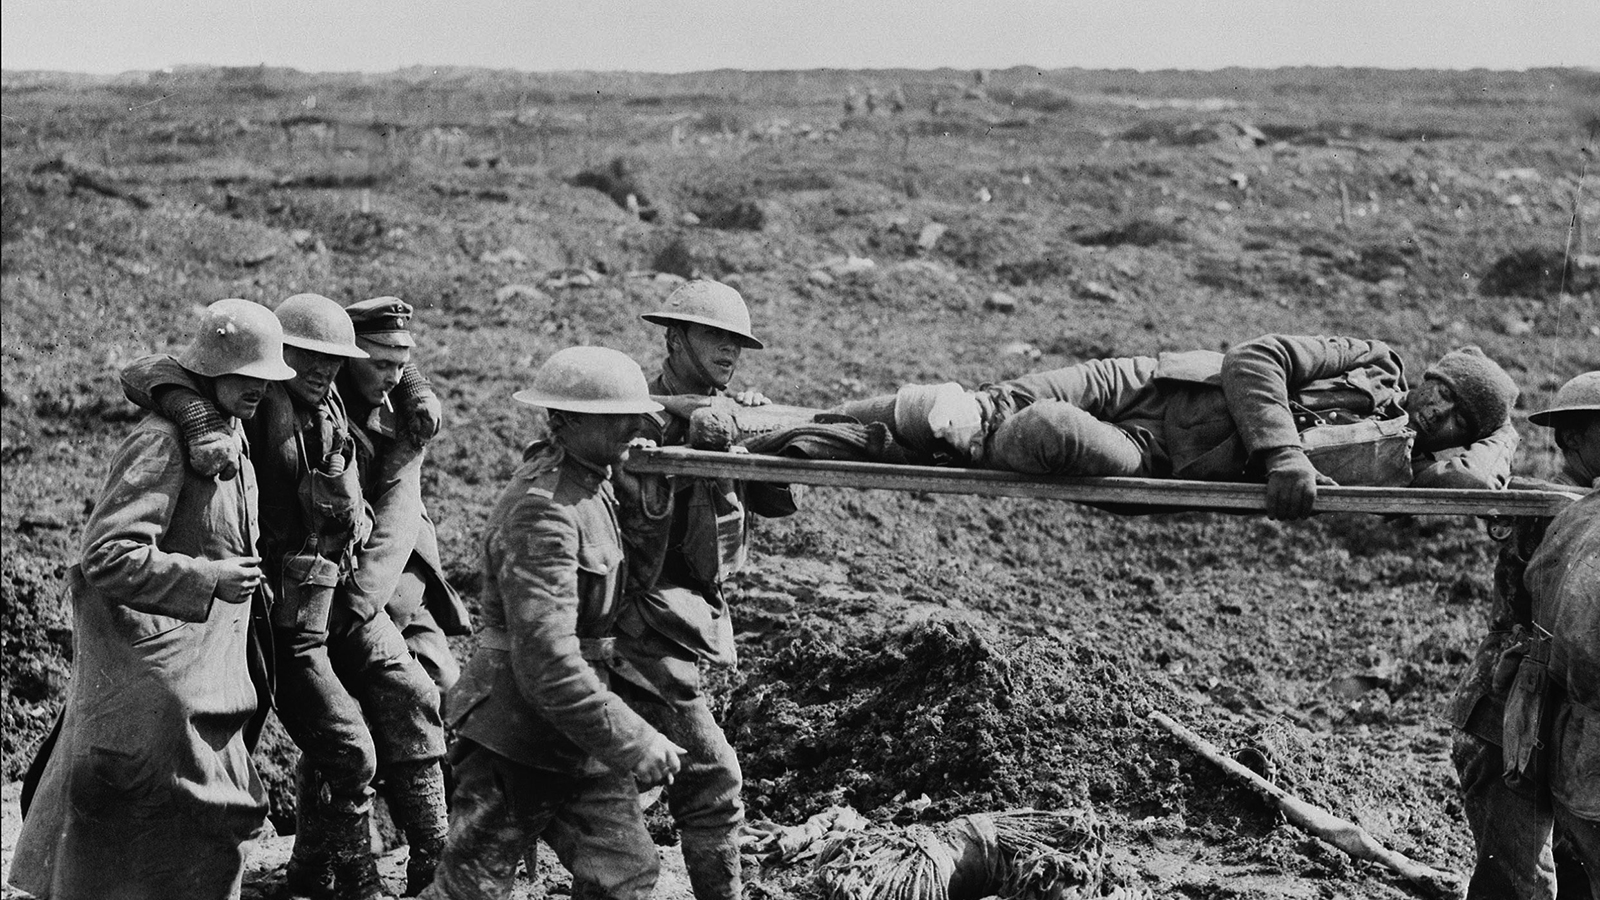 Maclean's Named The Great War